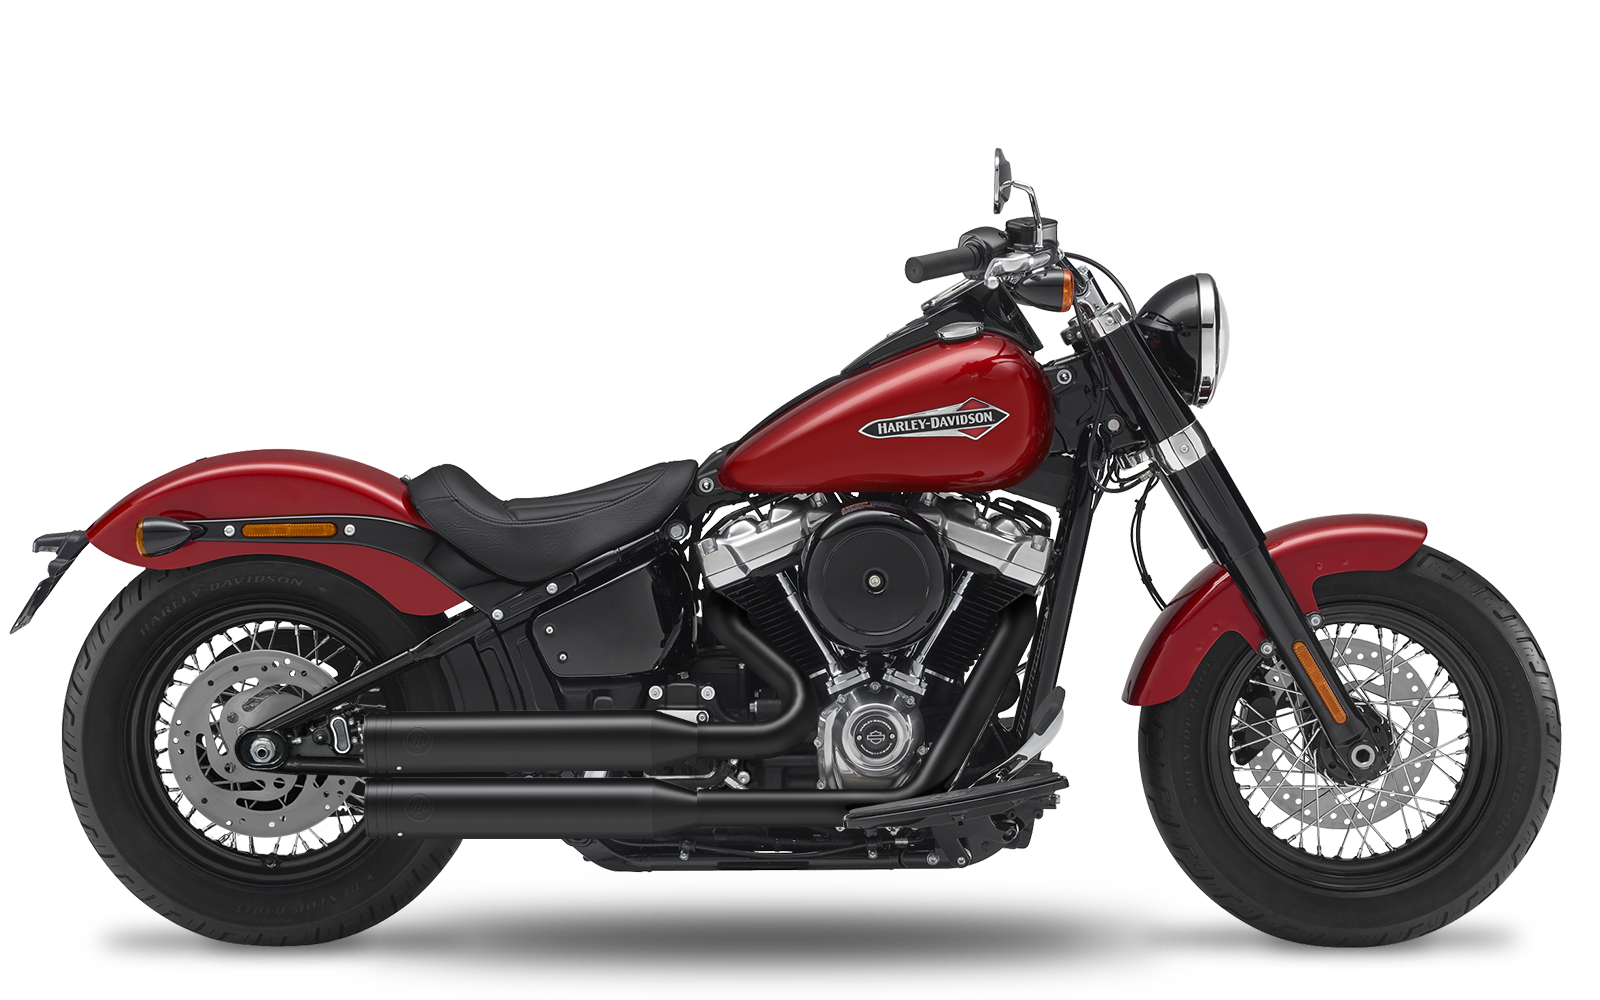 Softail - Slim - ME107 - 2021 - Complete systems